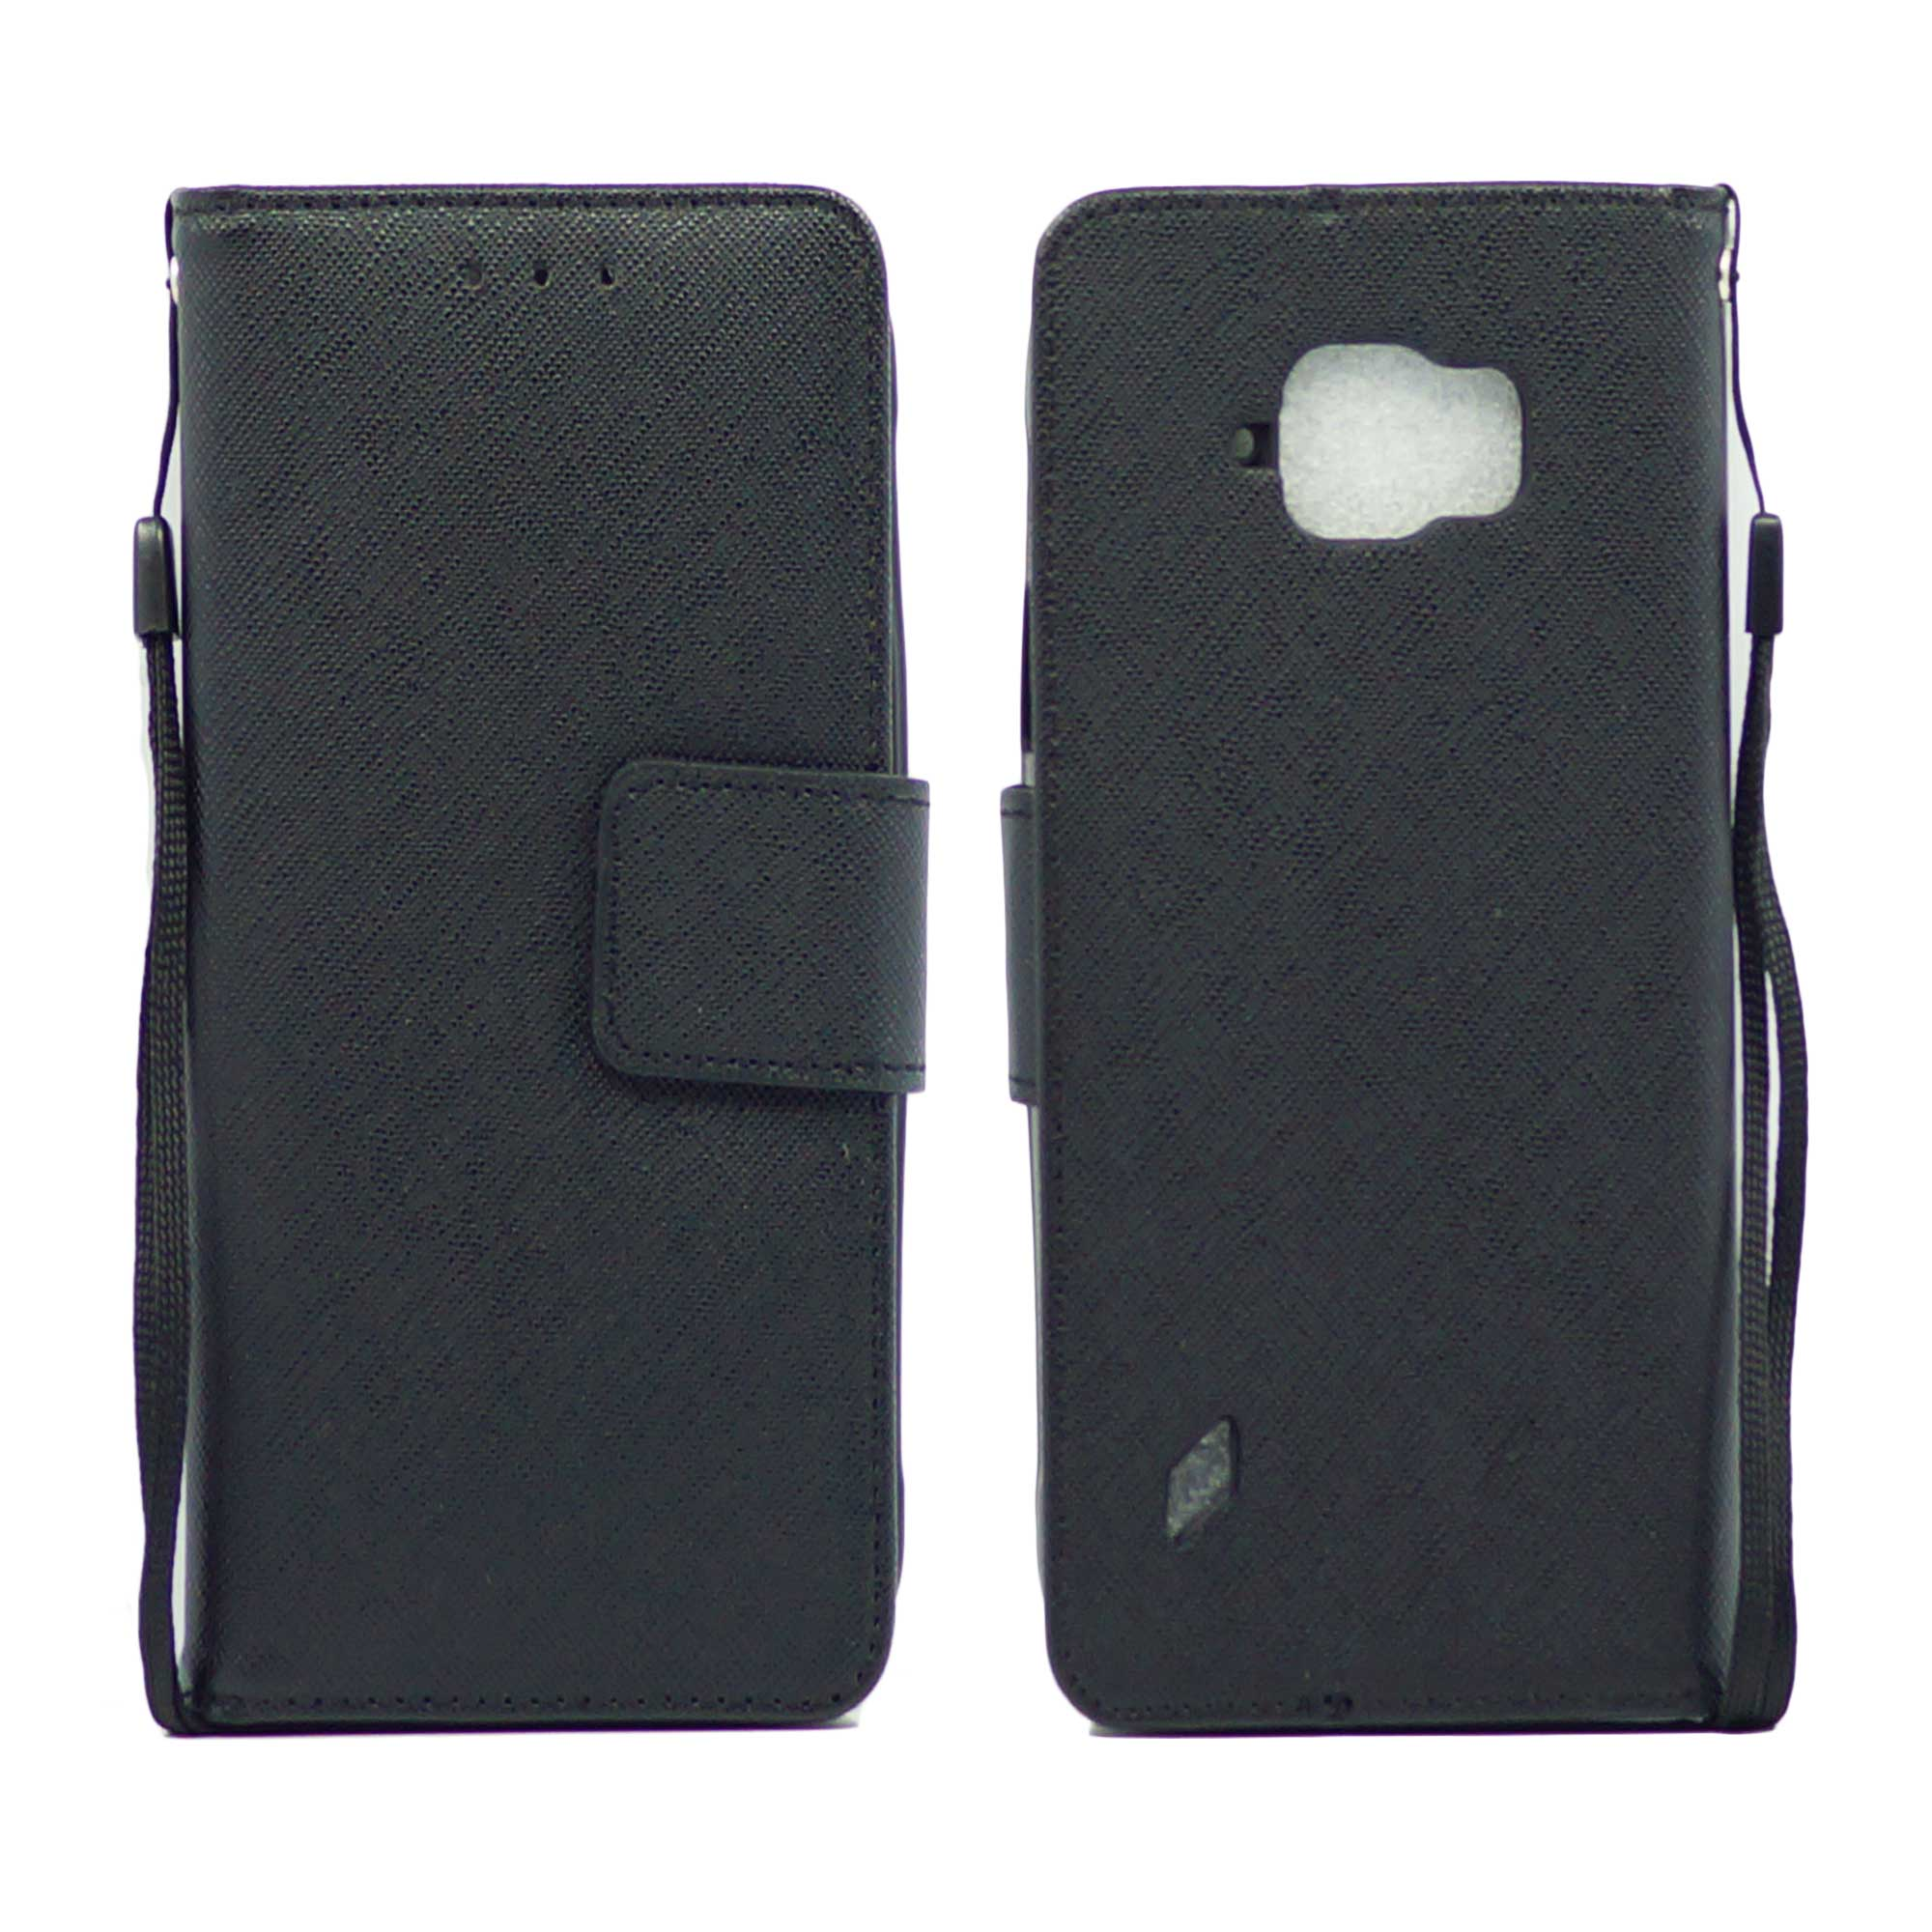 Samsung Galaxy S6 Active Leather Wallet Pouch Case Cover Black